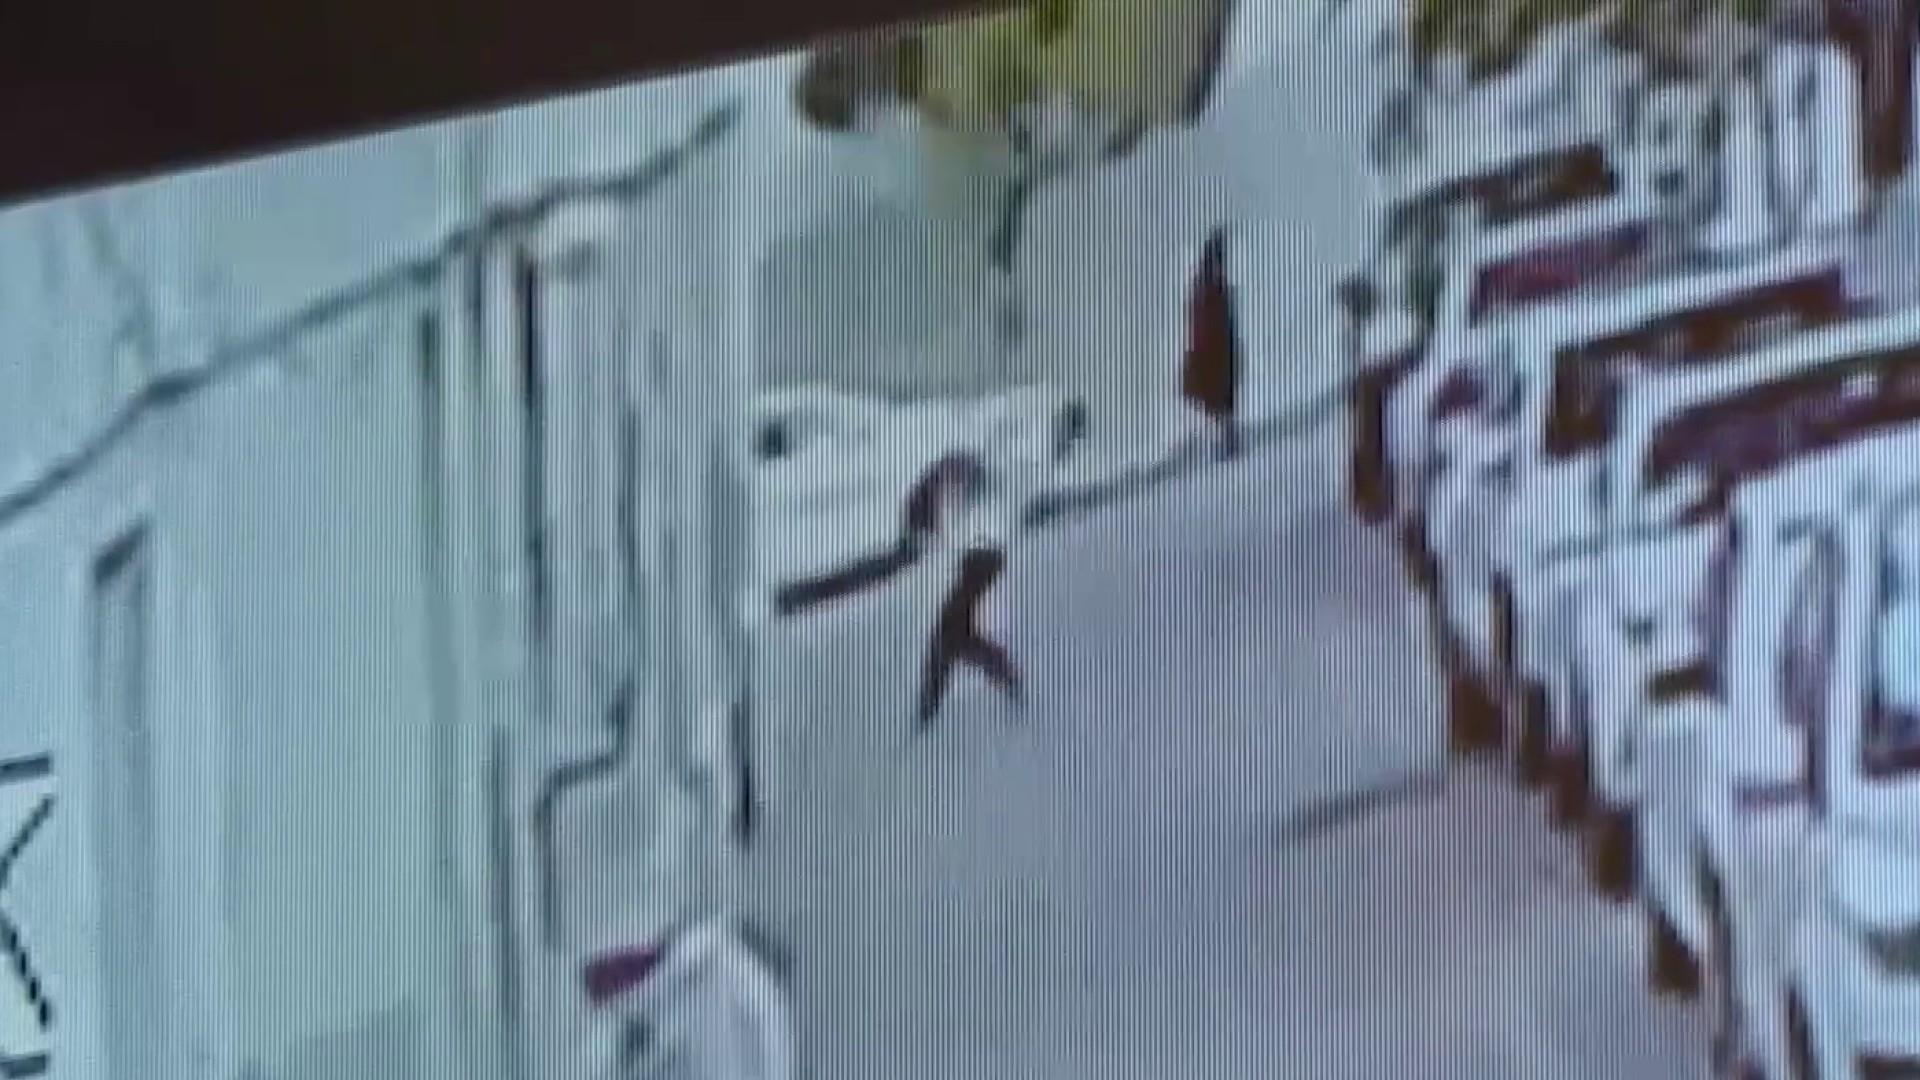 Dramatic video shows man rushing to save toddler falling from 5th floor window